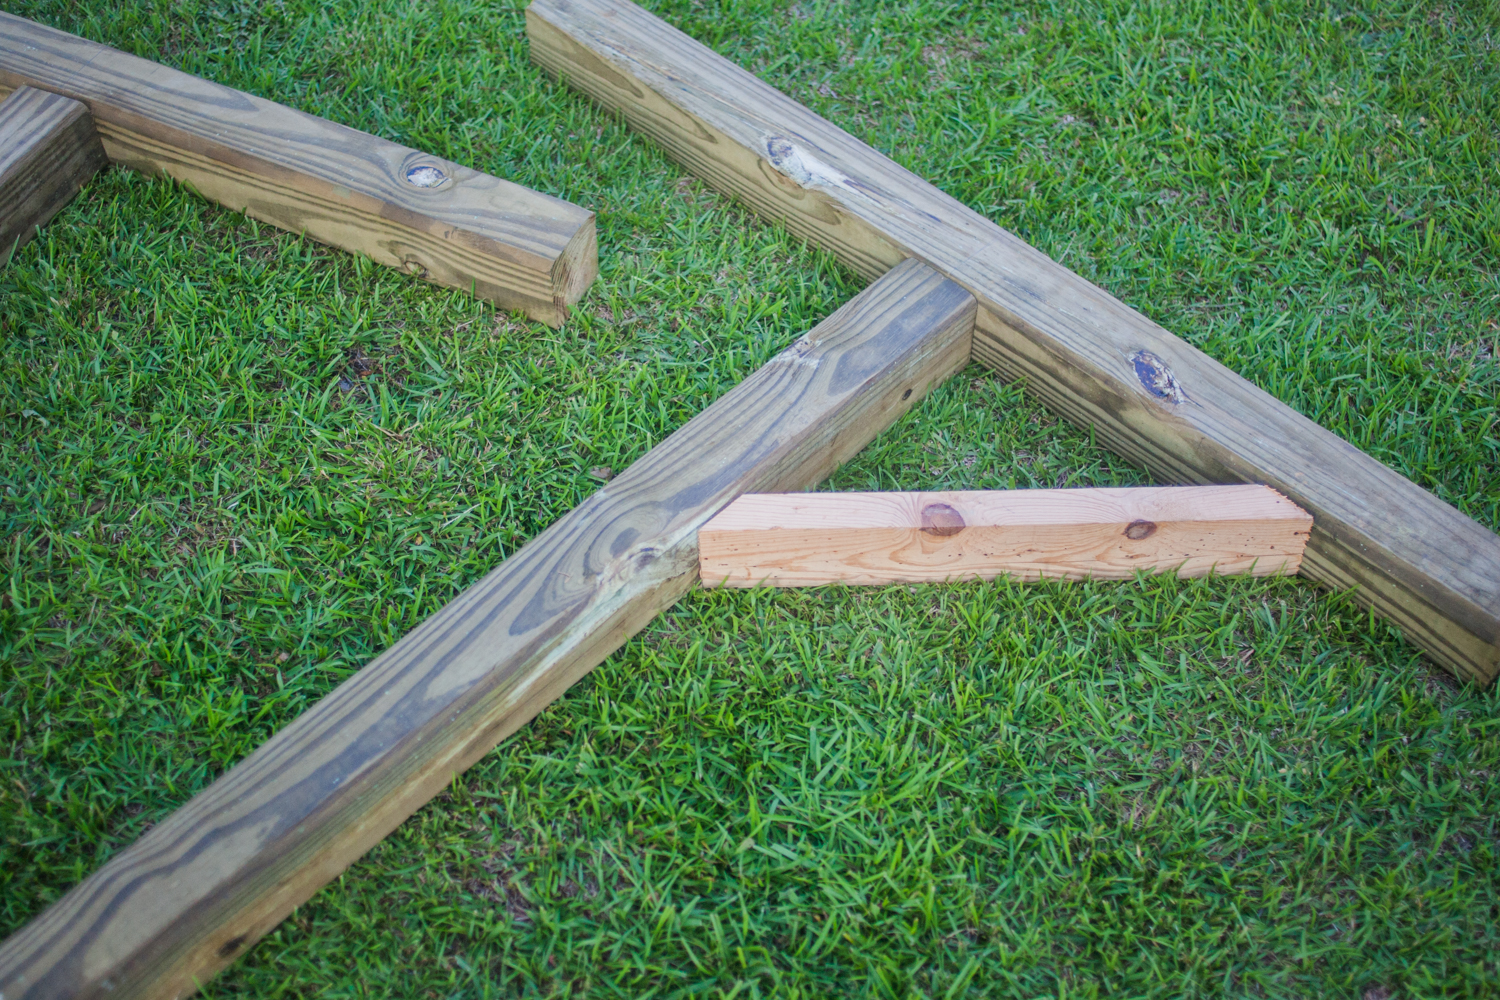 support beams attached to 4x4s